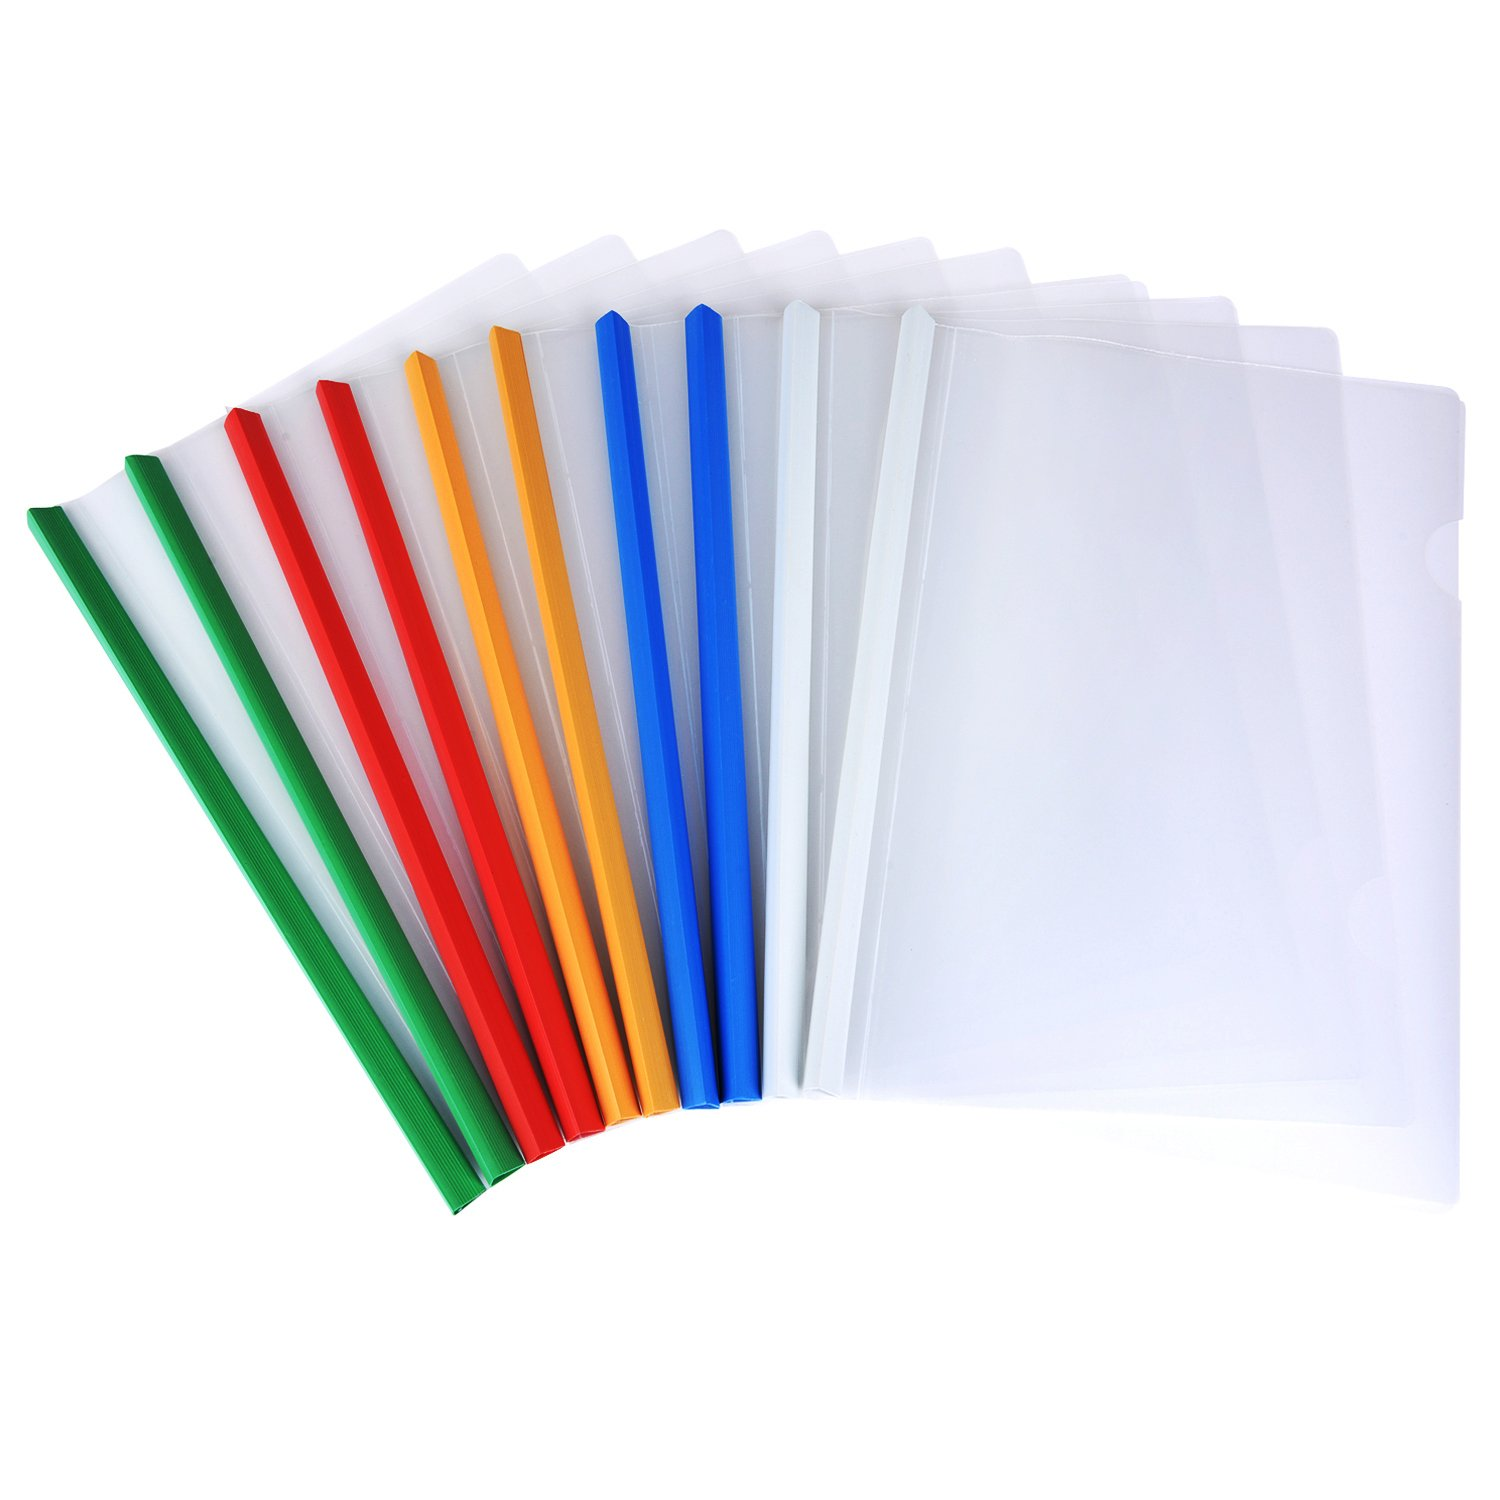 Shappy 10 Pieces Transparent File Folder Sliding Bar Report Covers for A4 Report Display Cover Organizer Binder, 5 Color